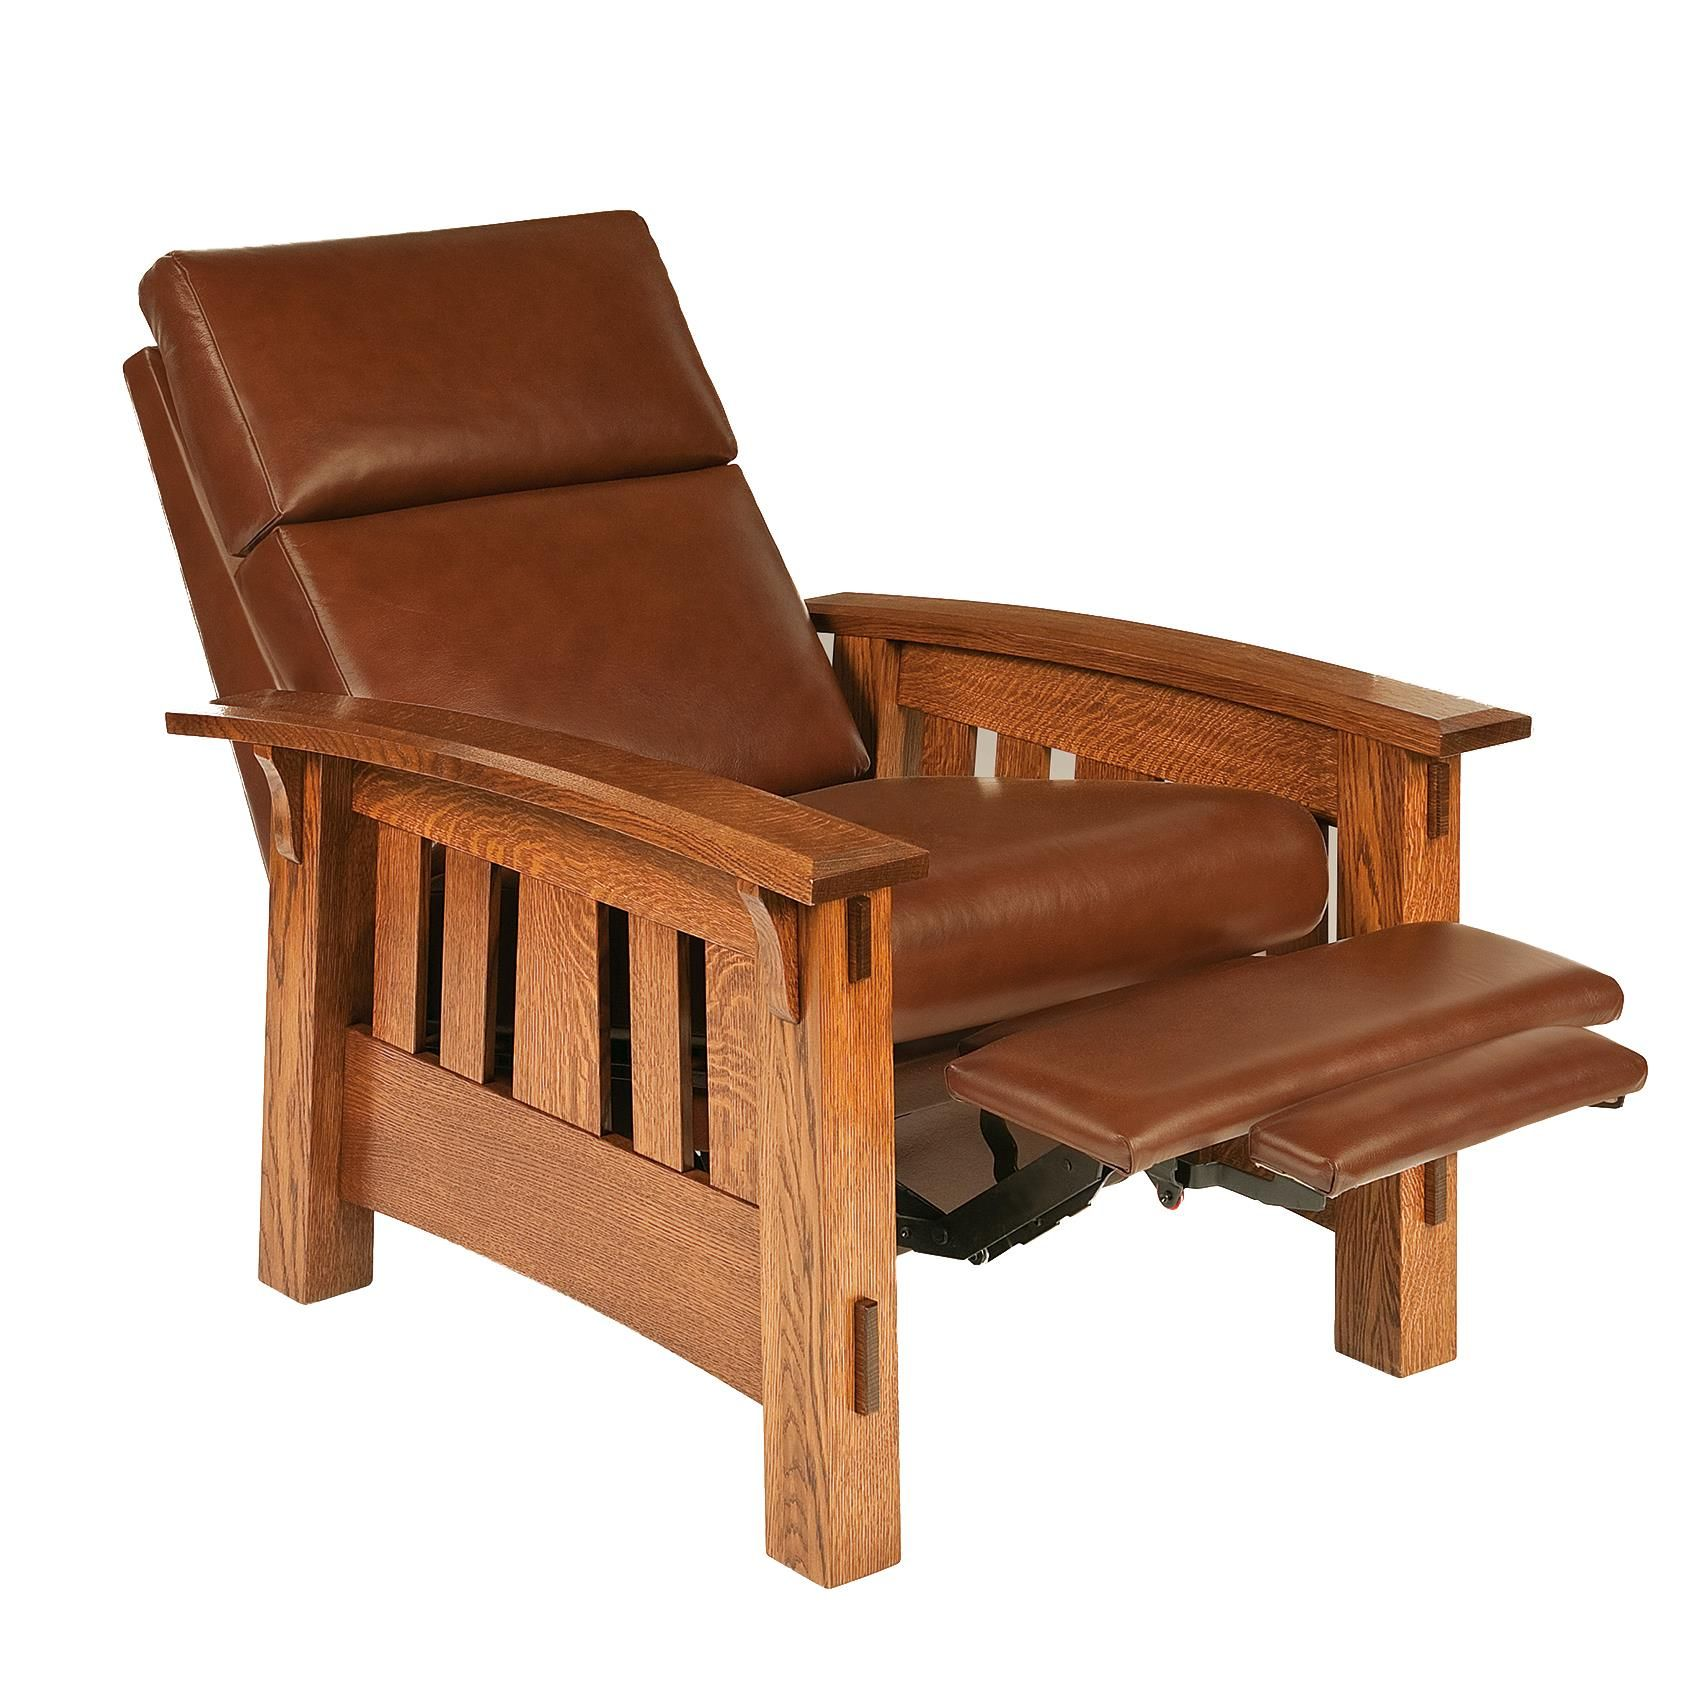 Mission Mccoy Recliner With Optional Power Recliner Mission Furniture Craftsman Furniture Mission Style Furniture